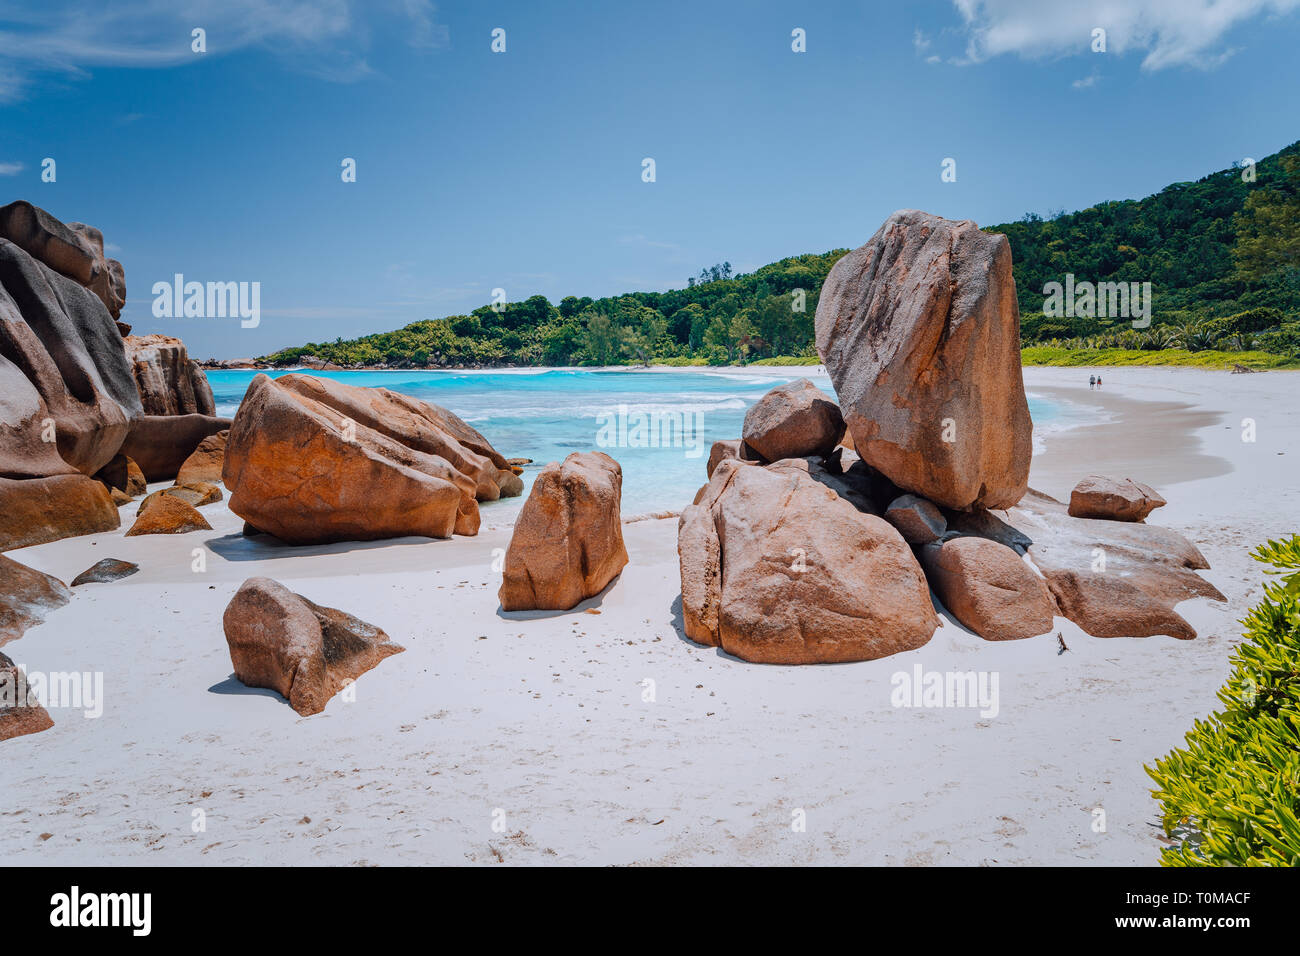 Couple on tropical beach lagoon with granite boulders in the turquoise water and a pristine white sand at Anse Cocos, La Digue island, Seychelles Stock Photo